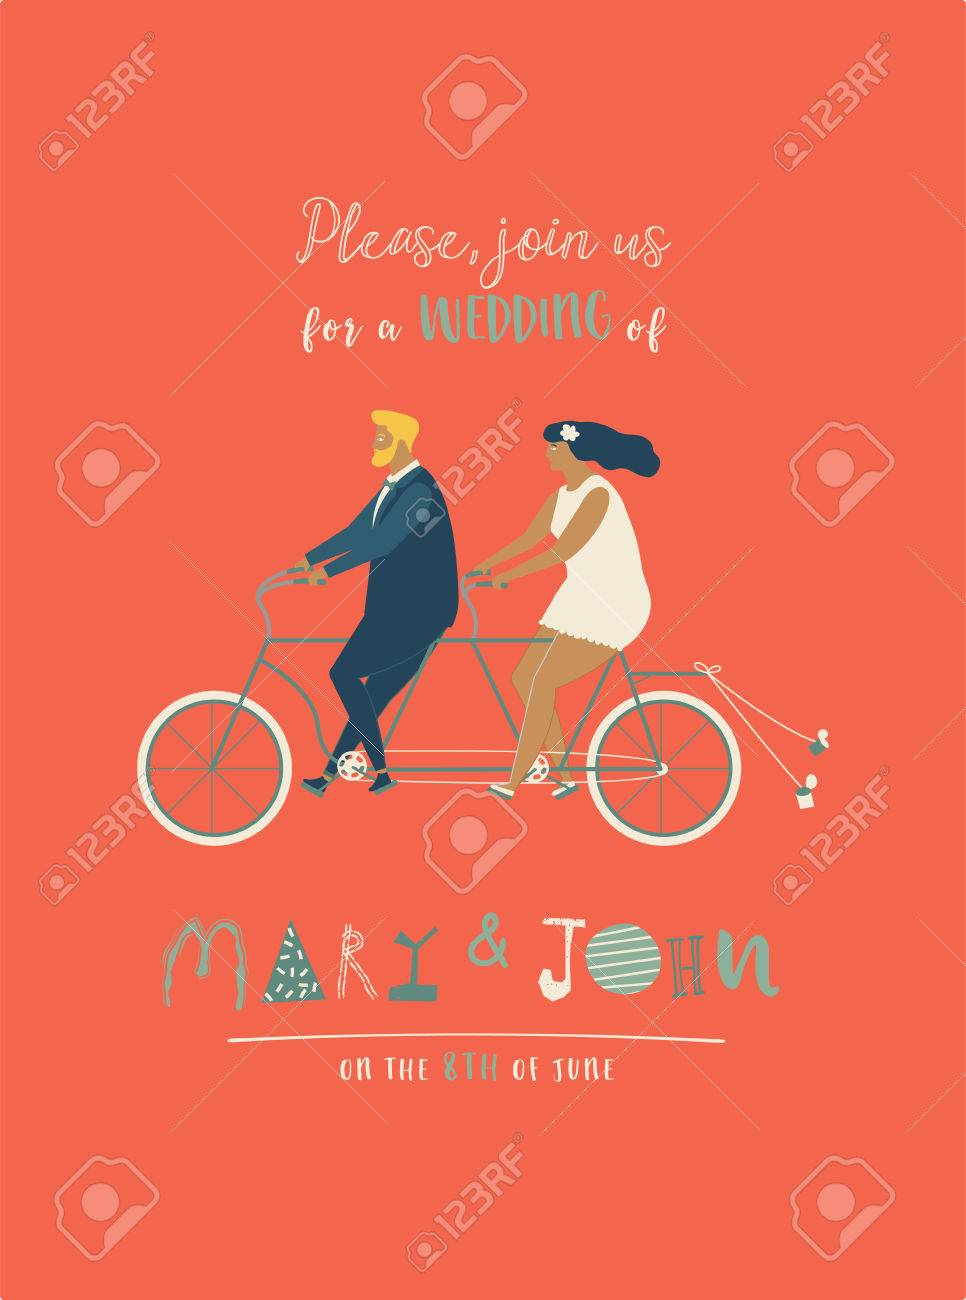 Wedding Invitation With Groom And Bride Riding Tandem Bicycle. Cute ...